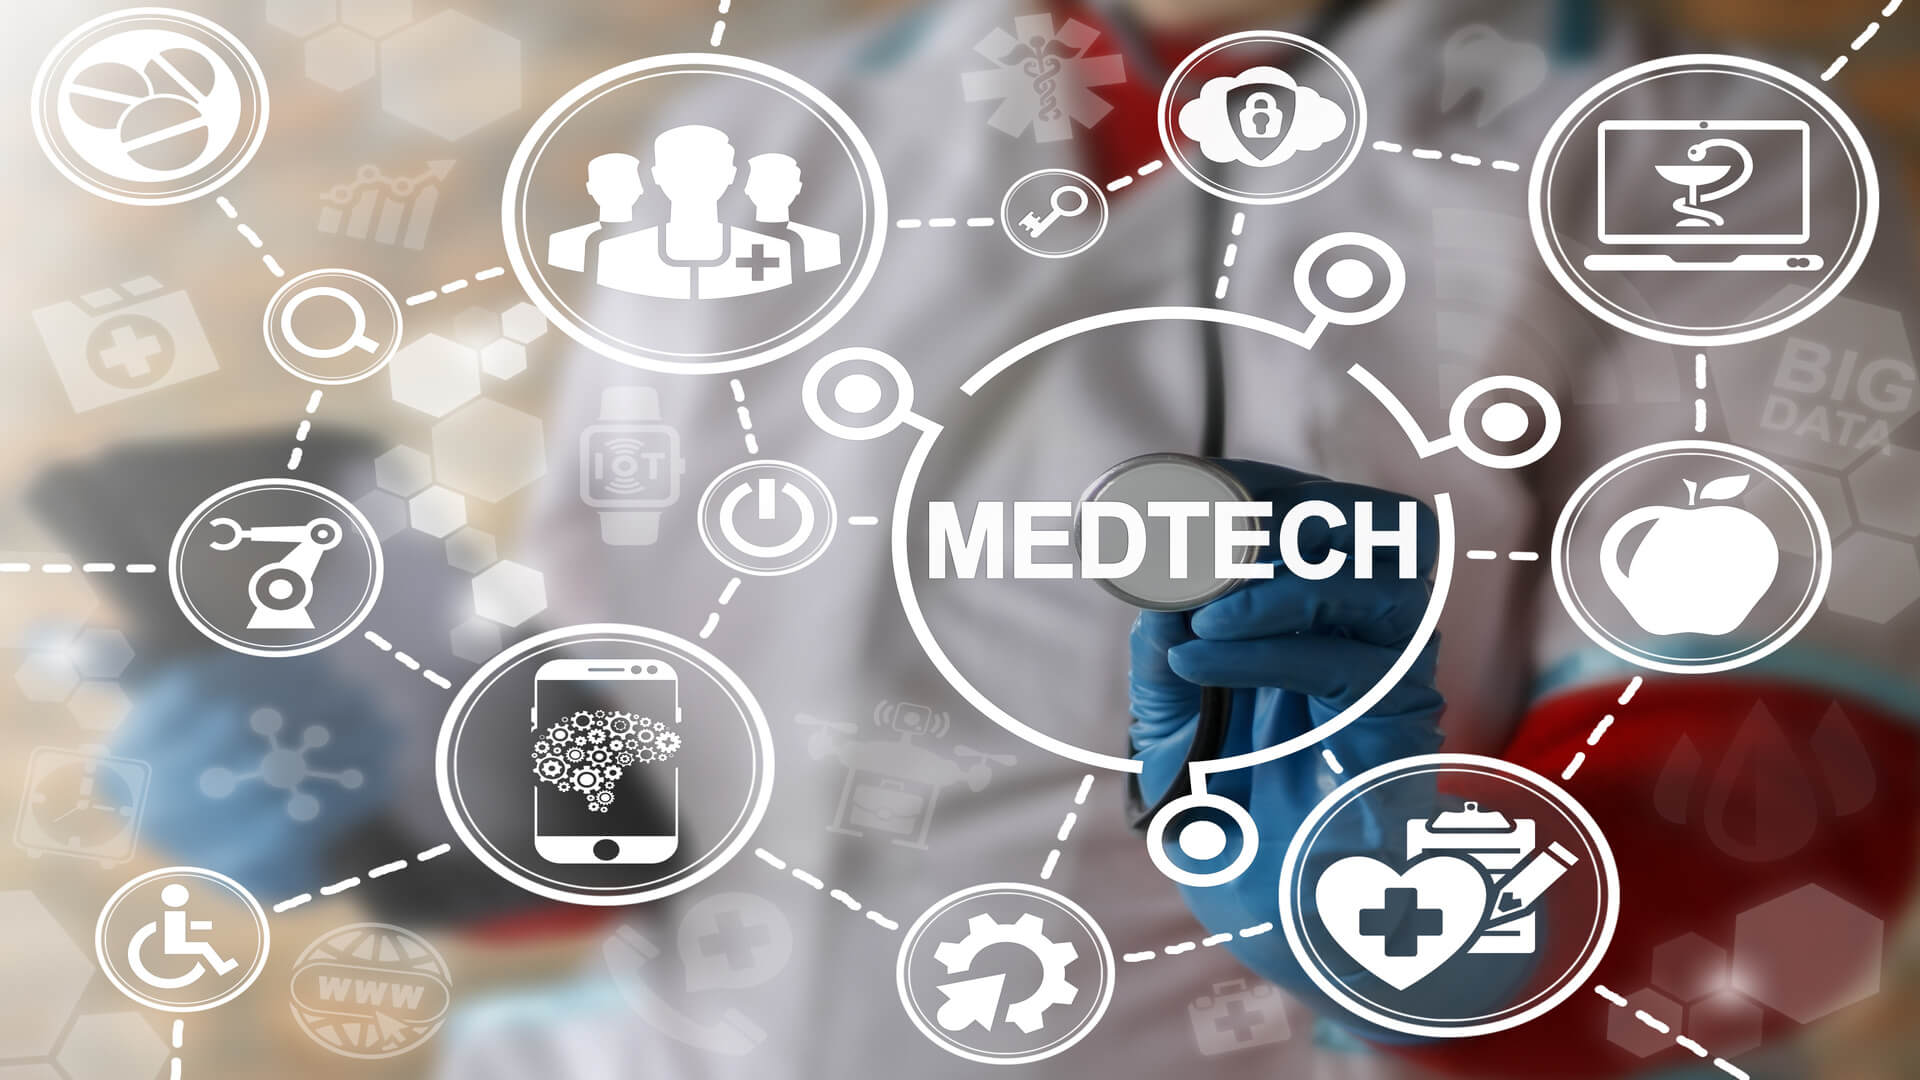 Medicine technology integration automation computing health care concept. Medtech, healthy modernization, medical engineering and healthcare development